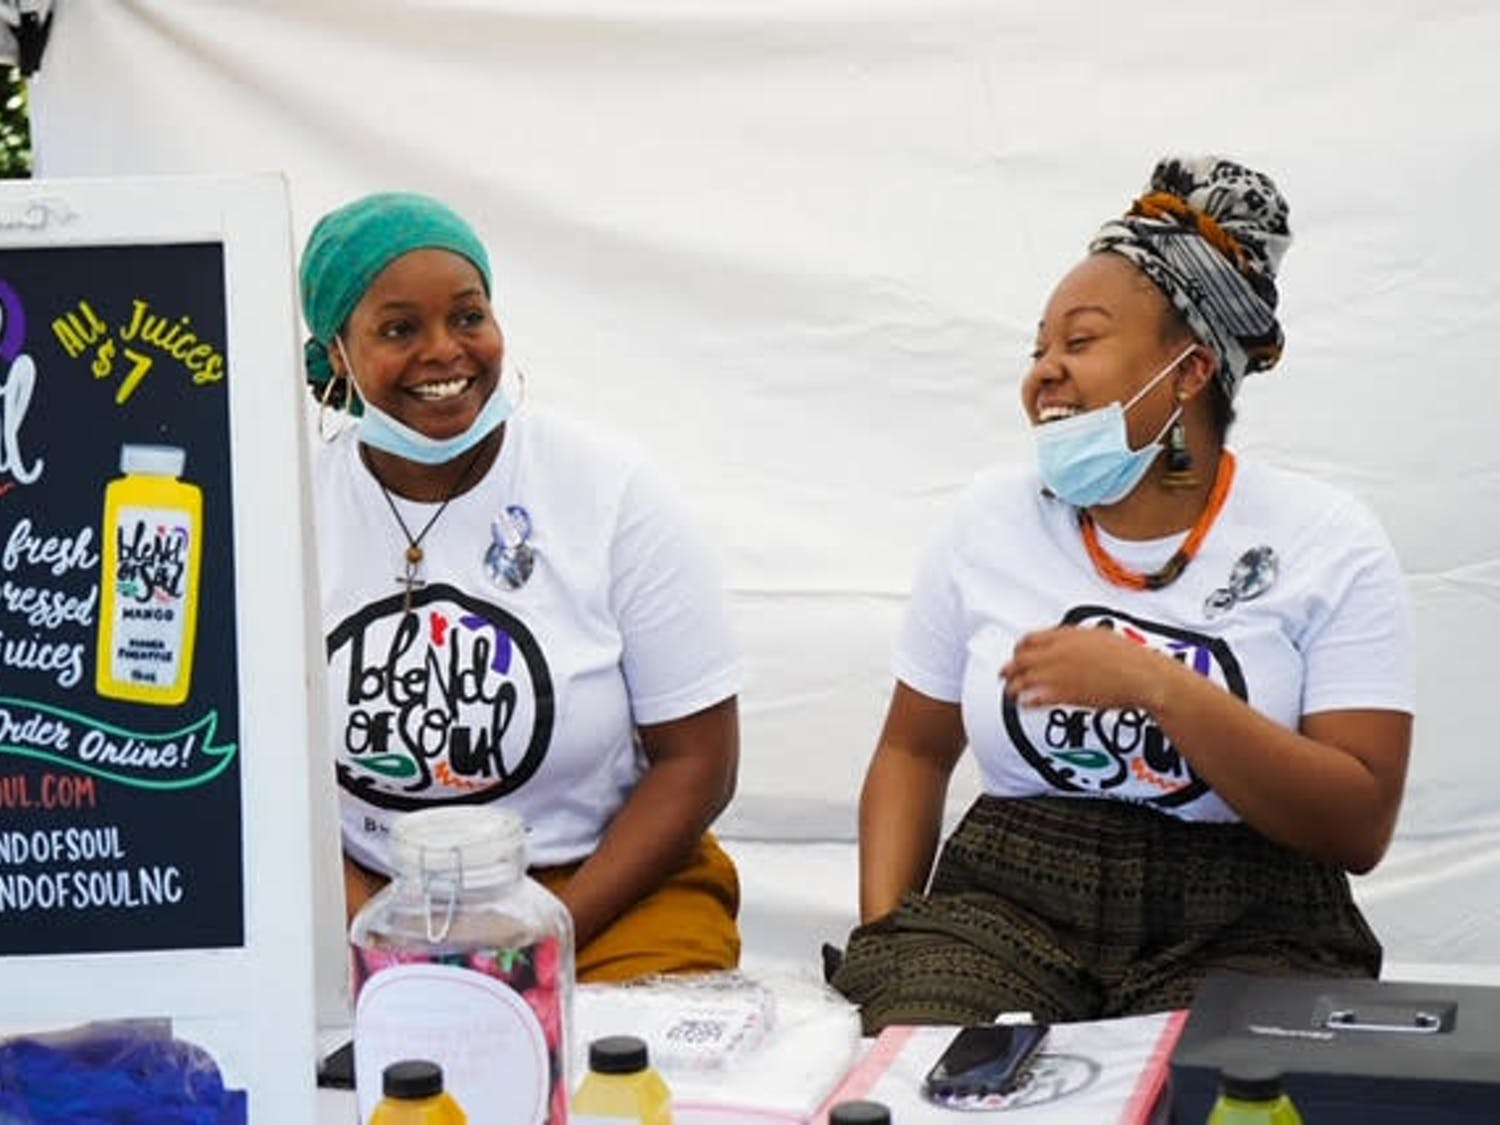 Margo Newkirk (left) and Kiera Gardner (right) run Blend of Soul at the Black Farmers' Market in Durham, NC. Photo courtesy of Samantha Everette.